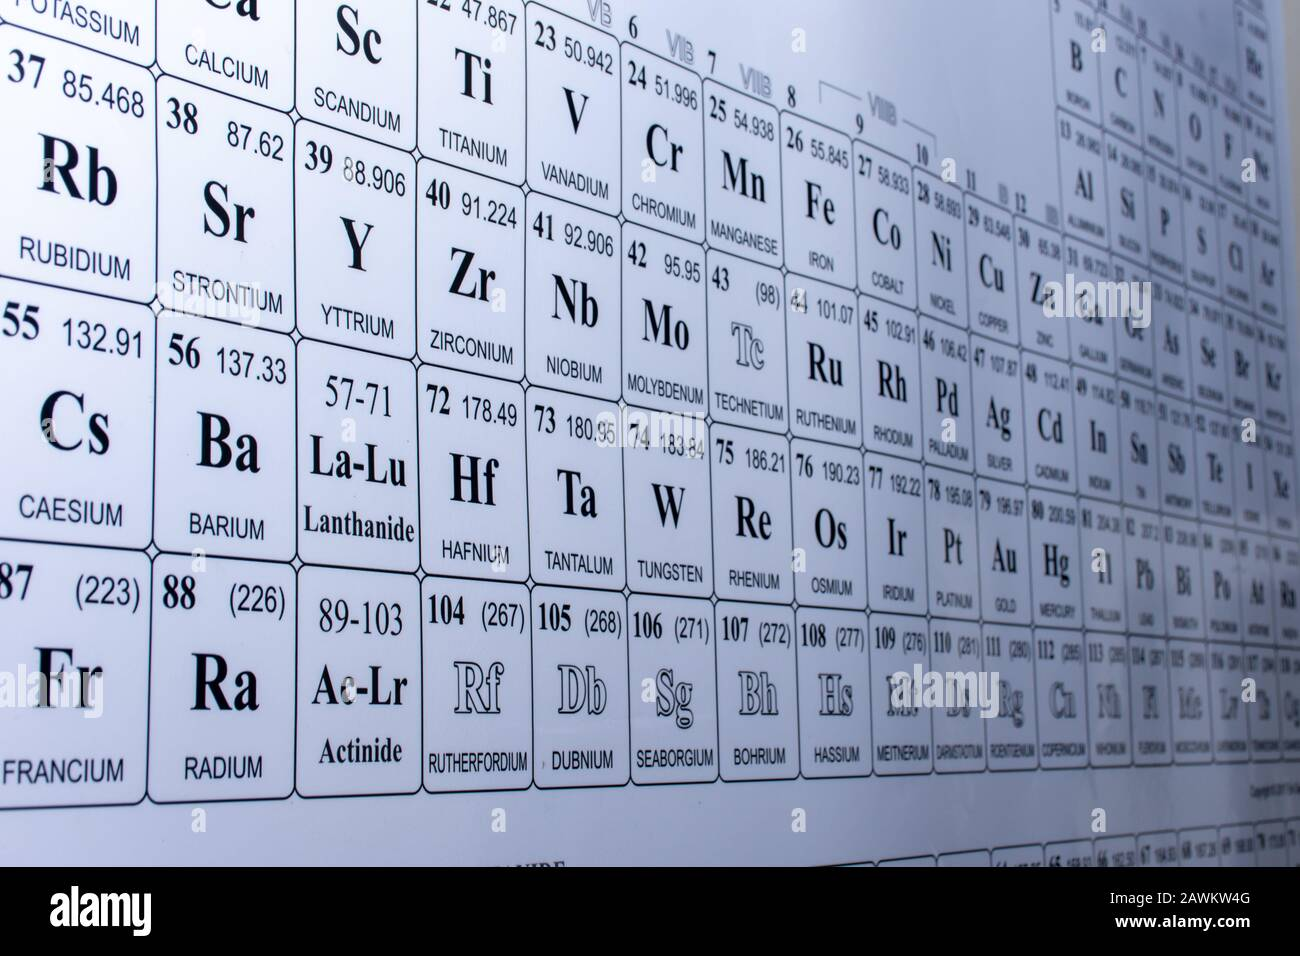 Periodic table of elements poster close up in science laboratory in a school for student learning. Stock Photo